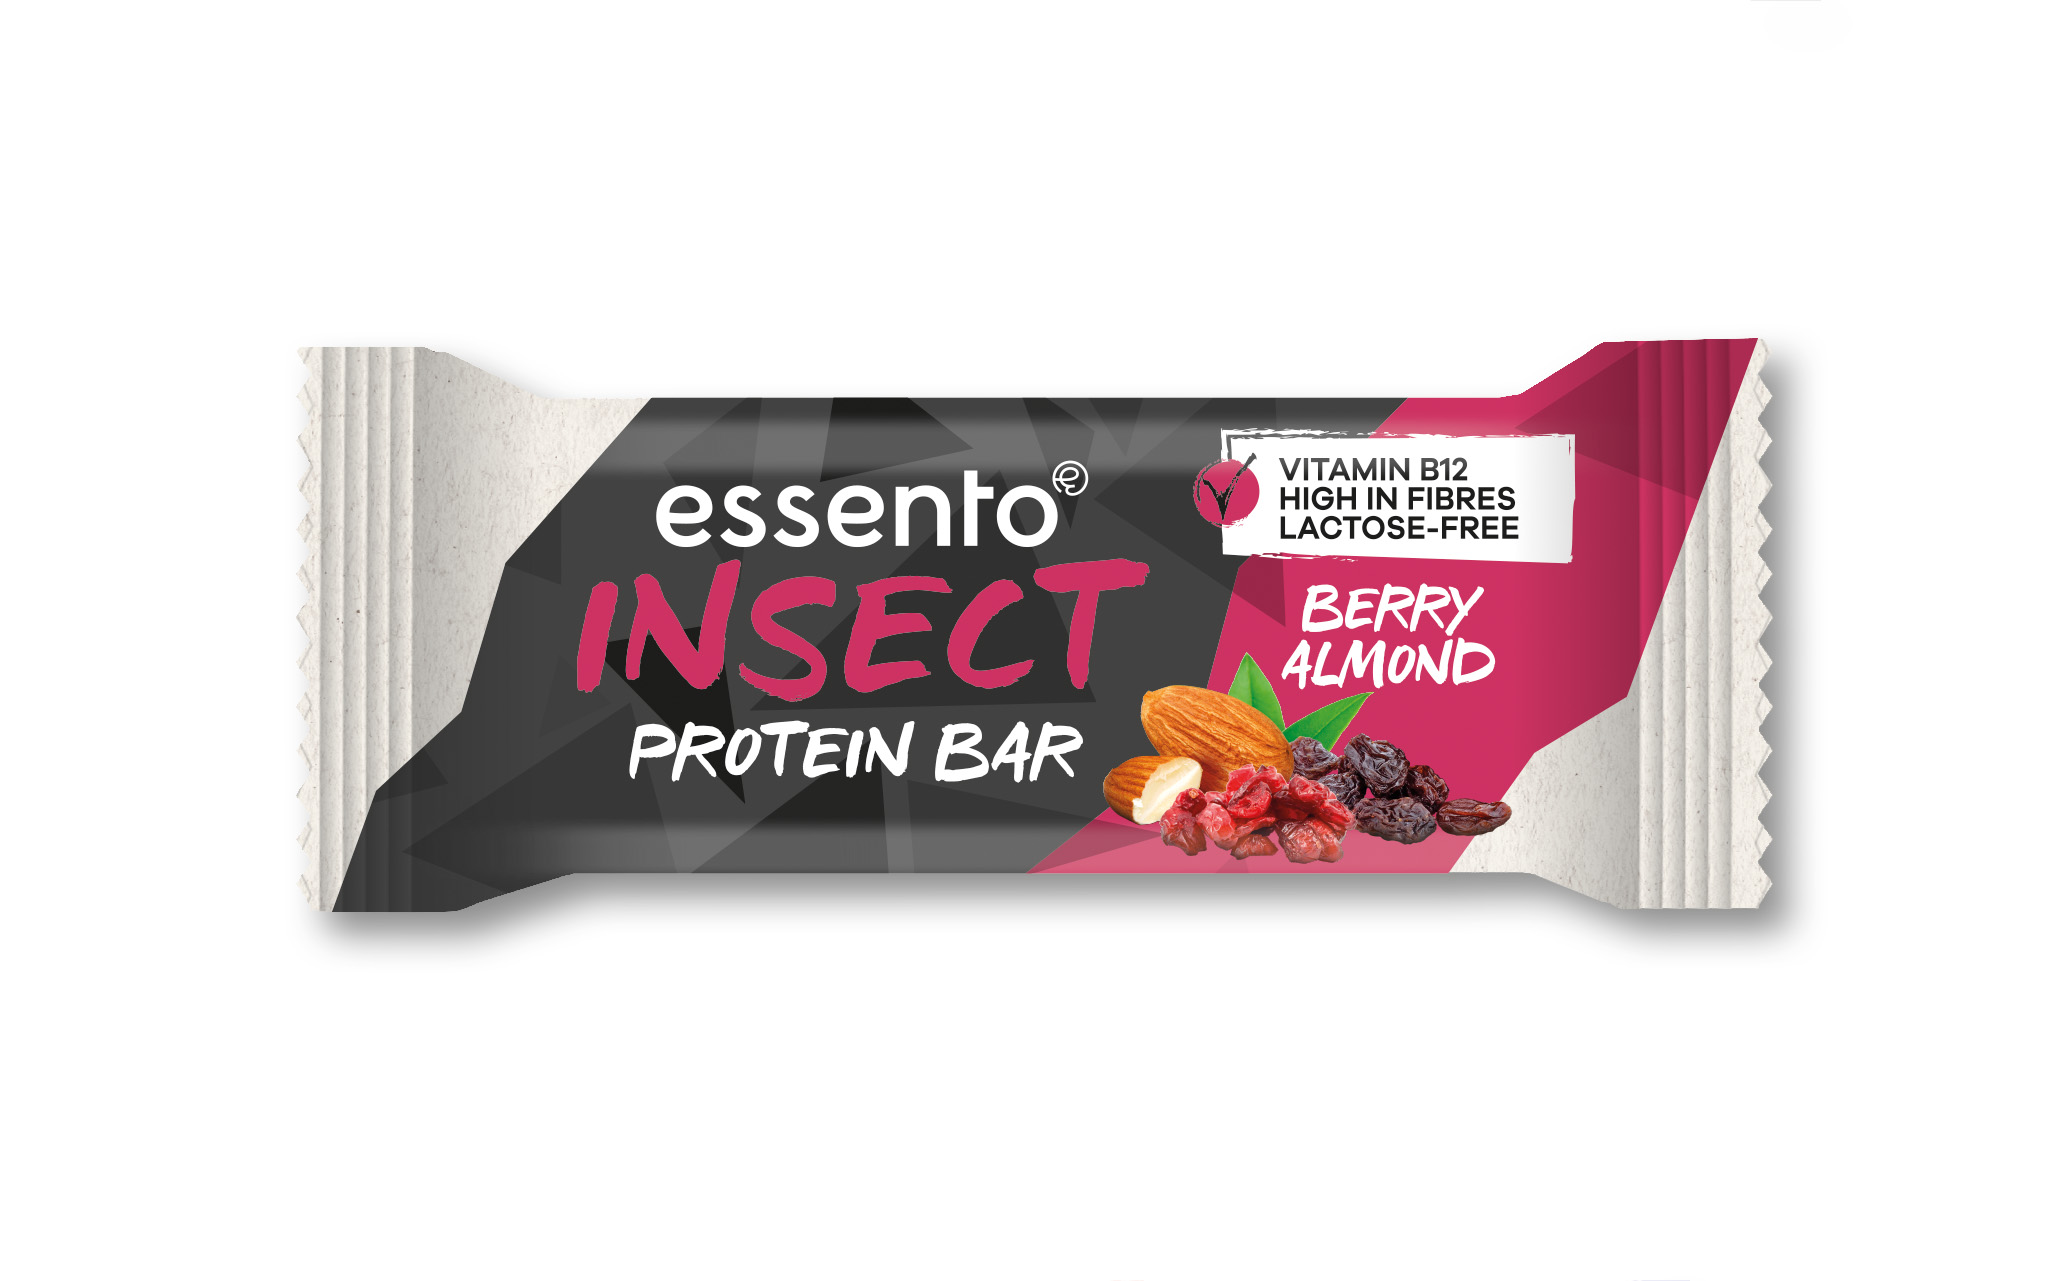 Essento Insect Protein Riegel - Berry Almond